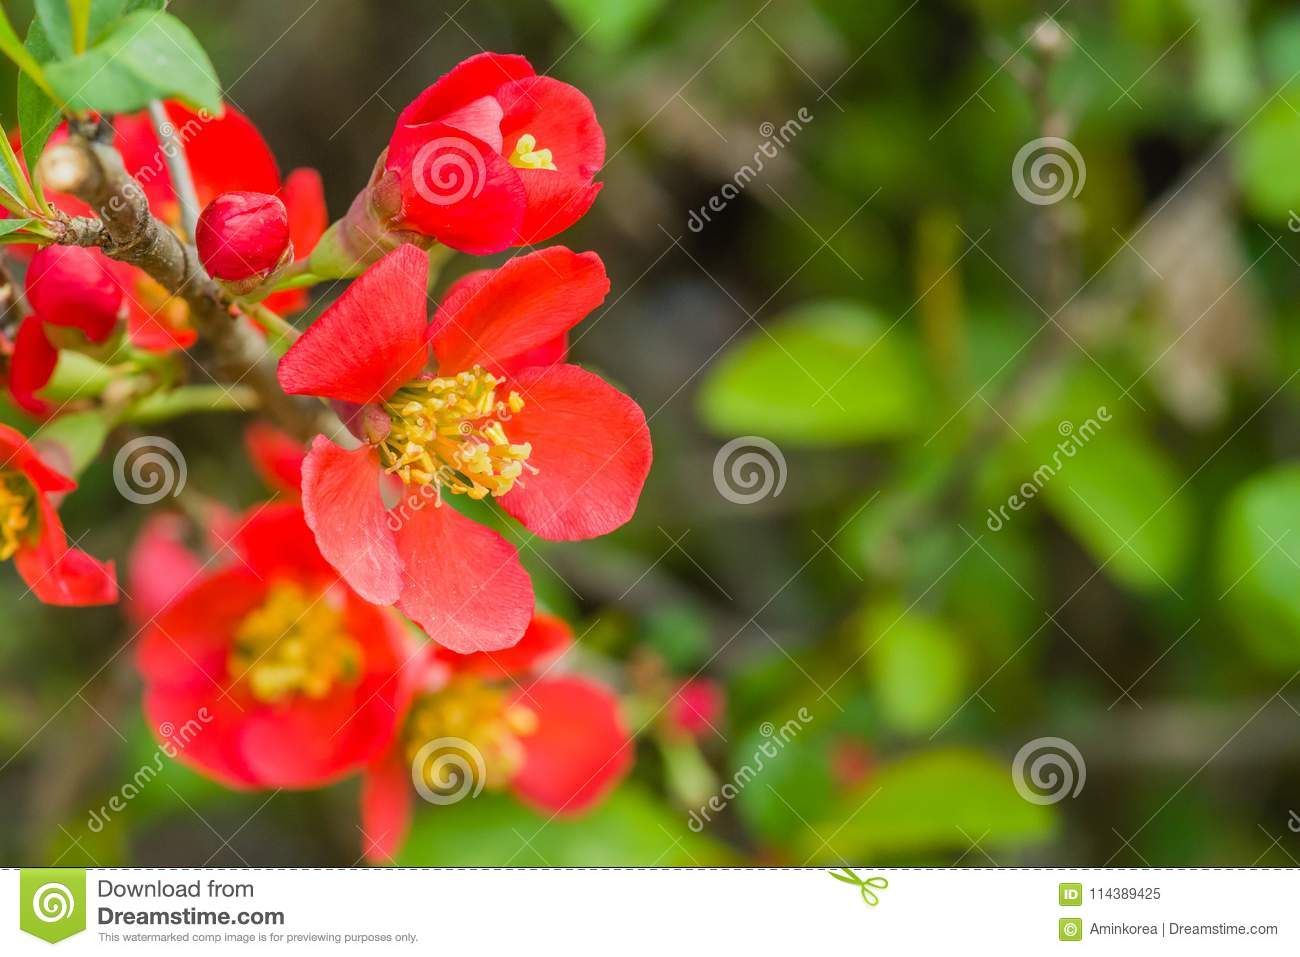 Camellia japonica aka korean fire stock image image of leaf plant closeup of camellia japonica flower small red flower with yellow stamen with natural blurred background flower is also known as korean fire mightylinksfo